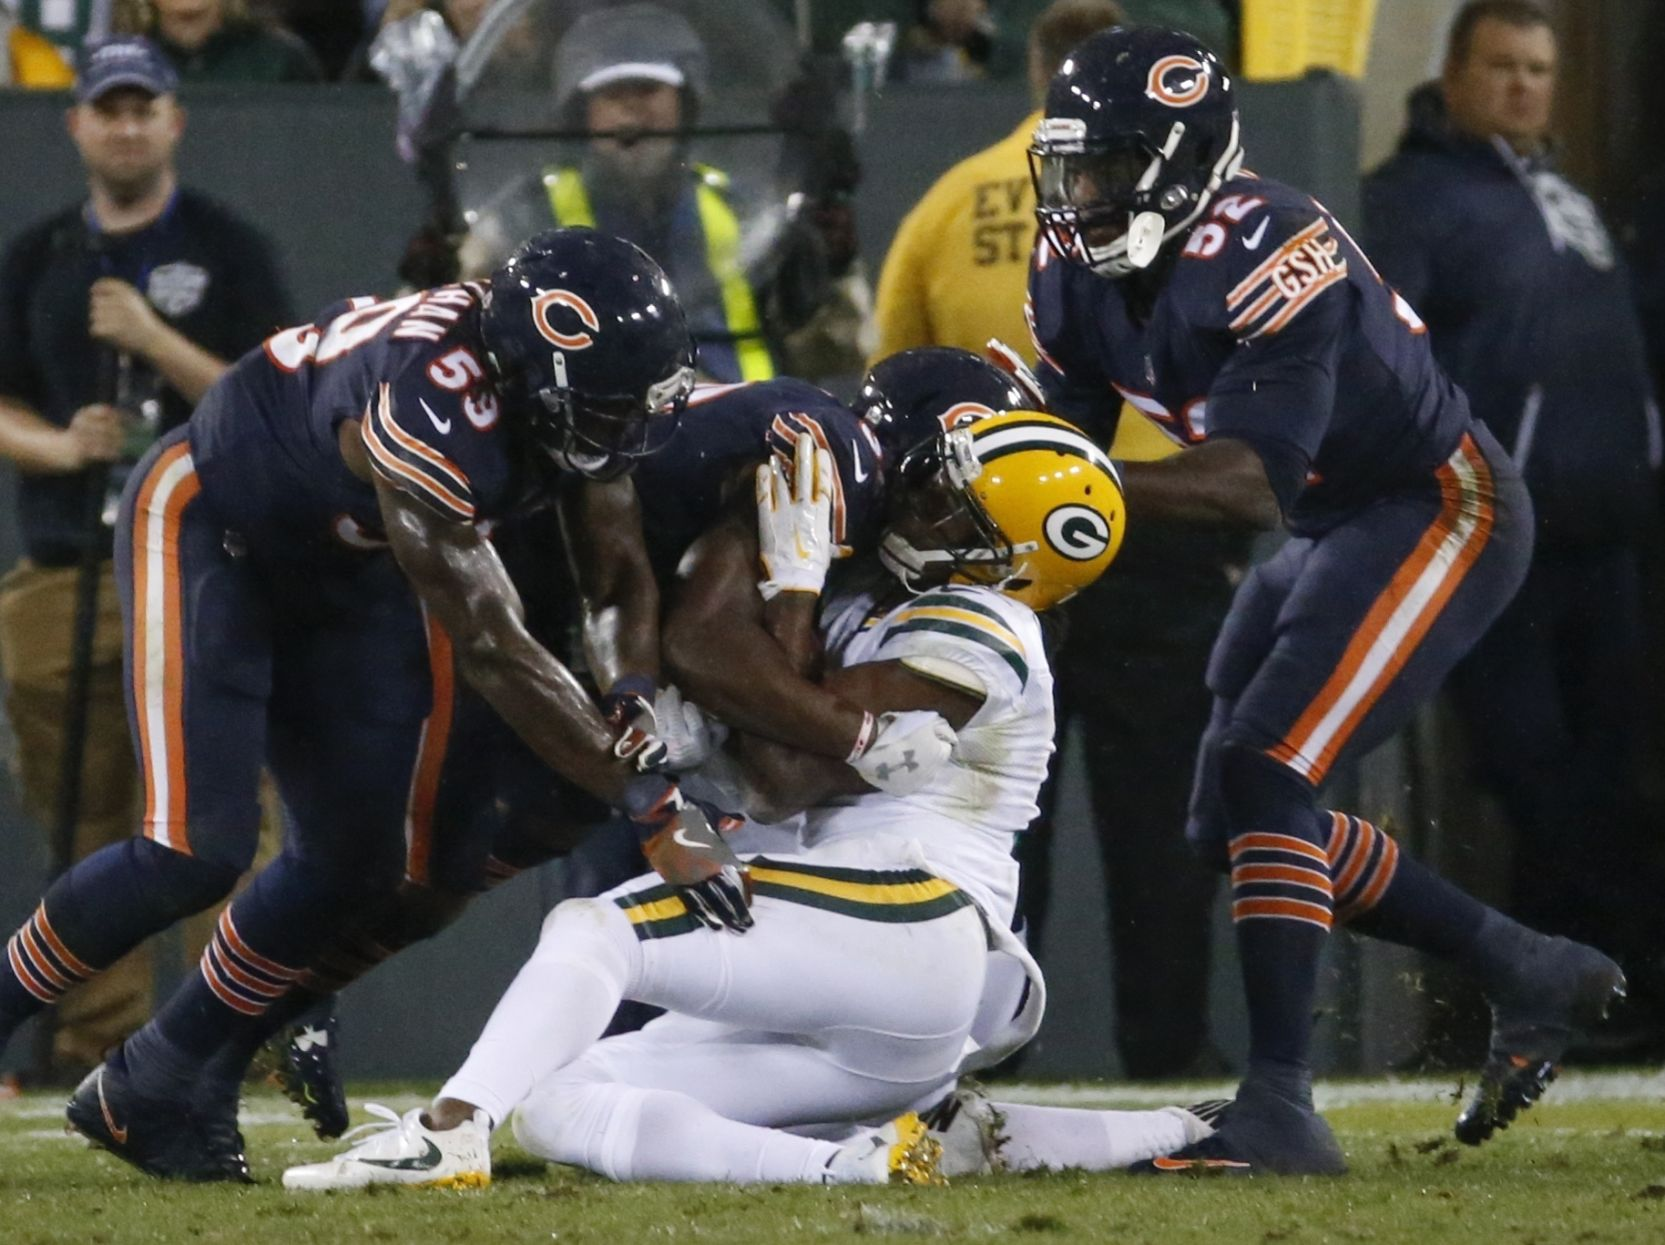 Green Bay Packers receiver Davante Adams stretchered off field